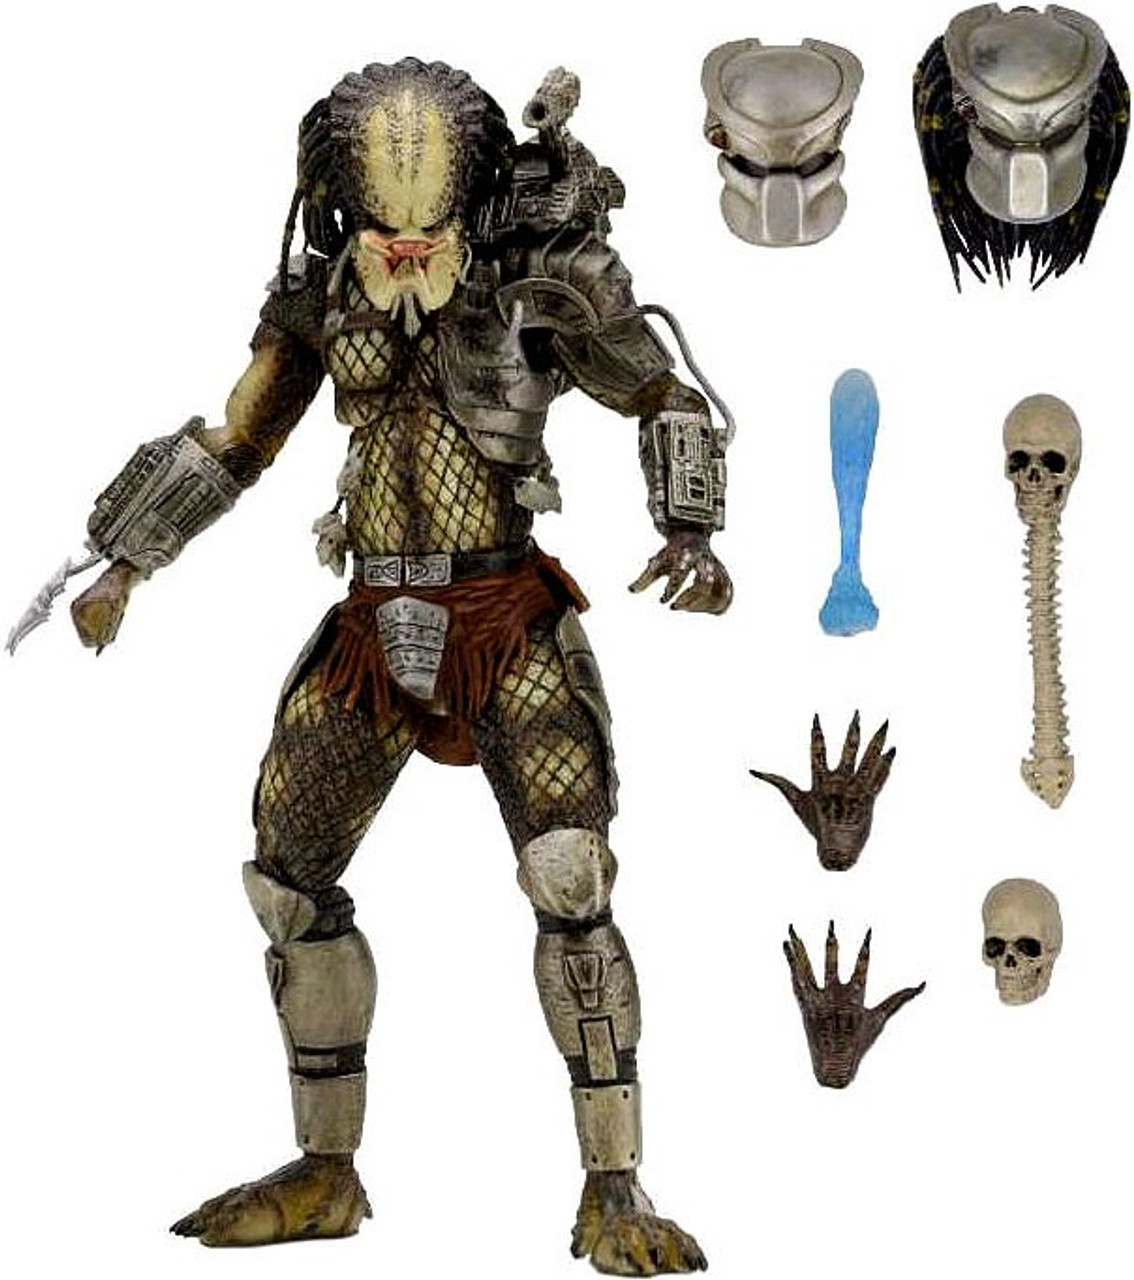 NECA Predator 2 Ultimate Jungle Hunter Action Figure